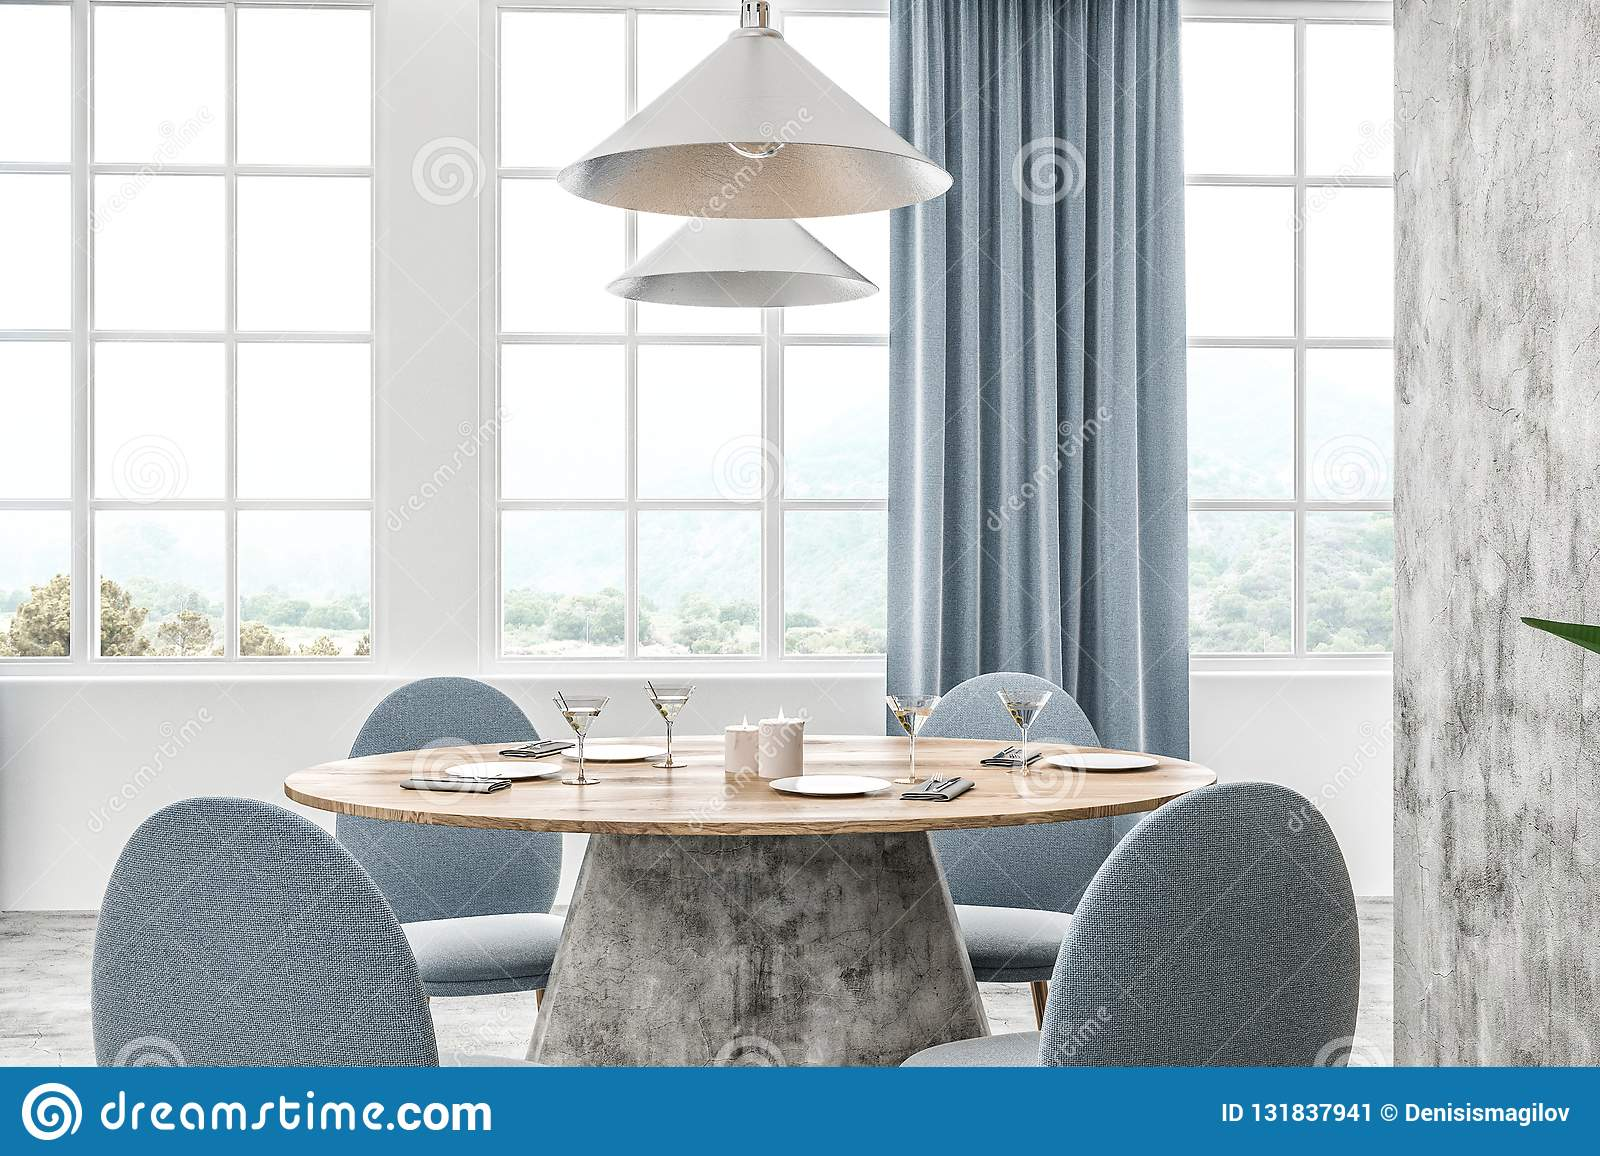 Admirable White Cafe Table With Curtains Stock Illustration Alphanode Cool Chair Designs And Ideas Alphanodeonline